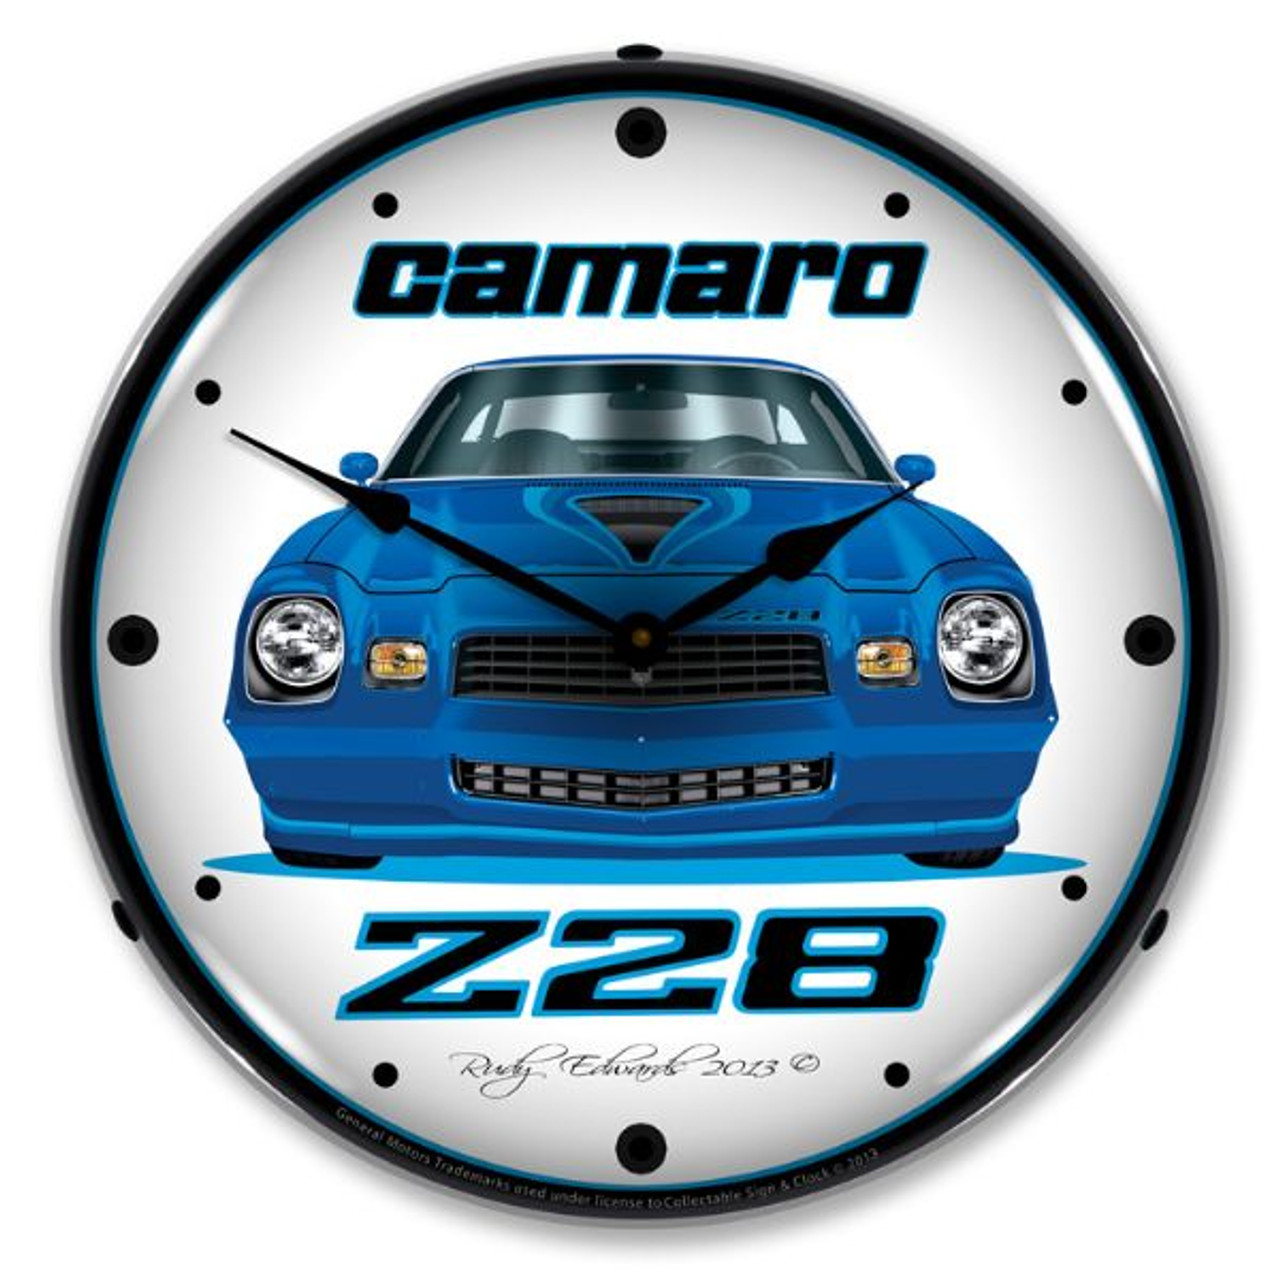 1979 Z28 Camaro Lighted Wall Clock 14 x 14 Inches